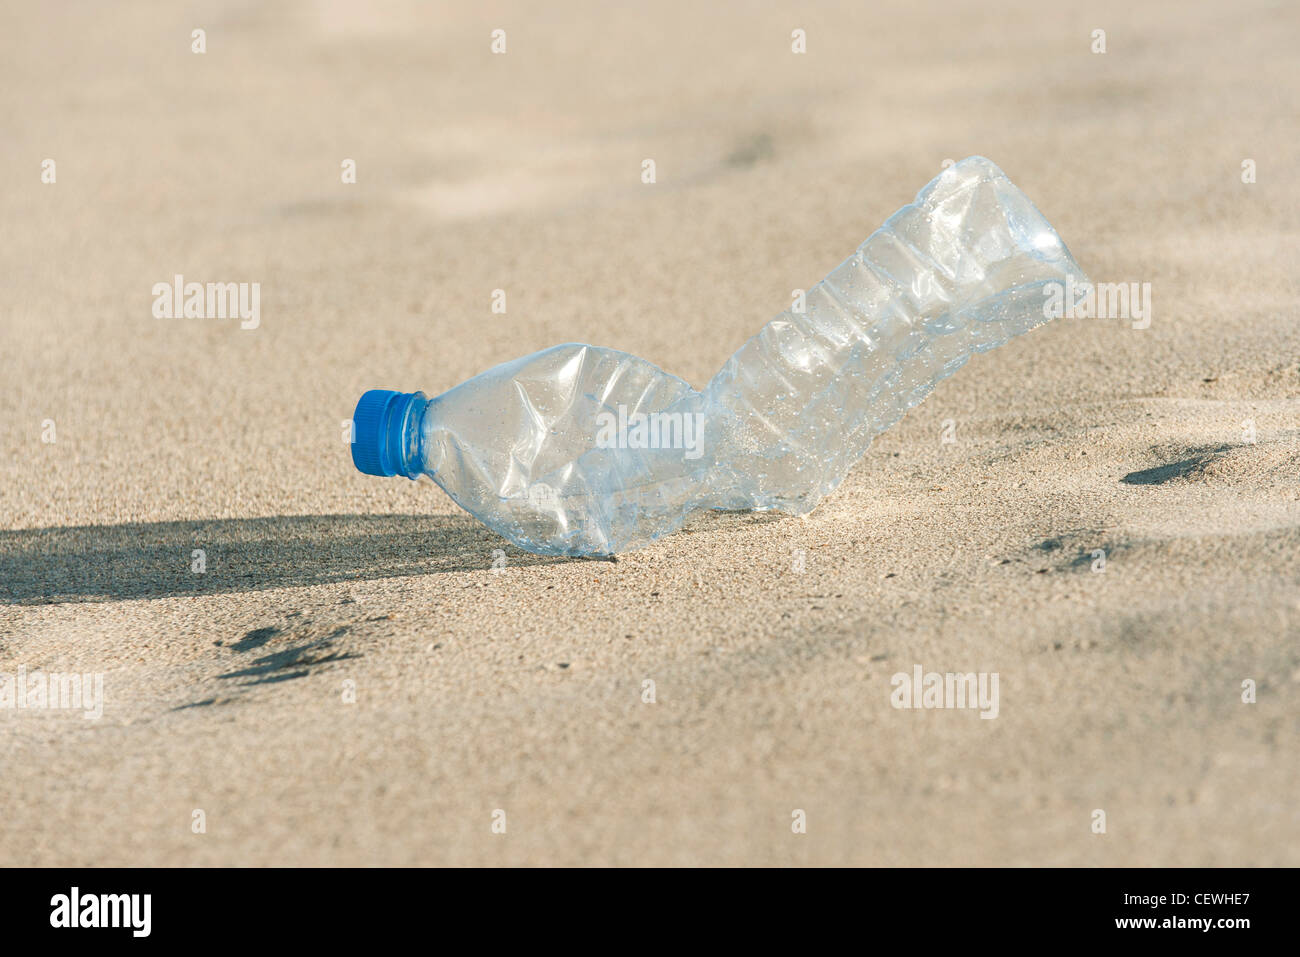 Empty plastic bottle on beach, close-up - Stock Image